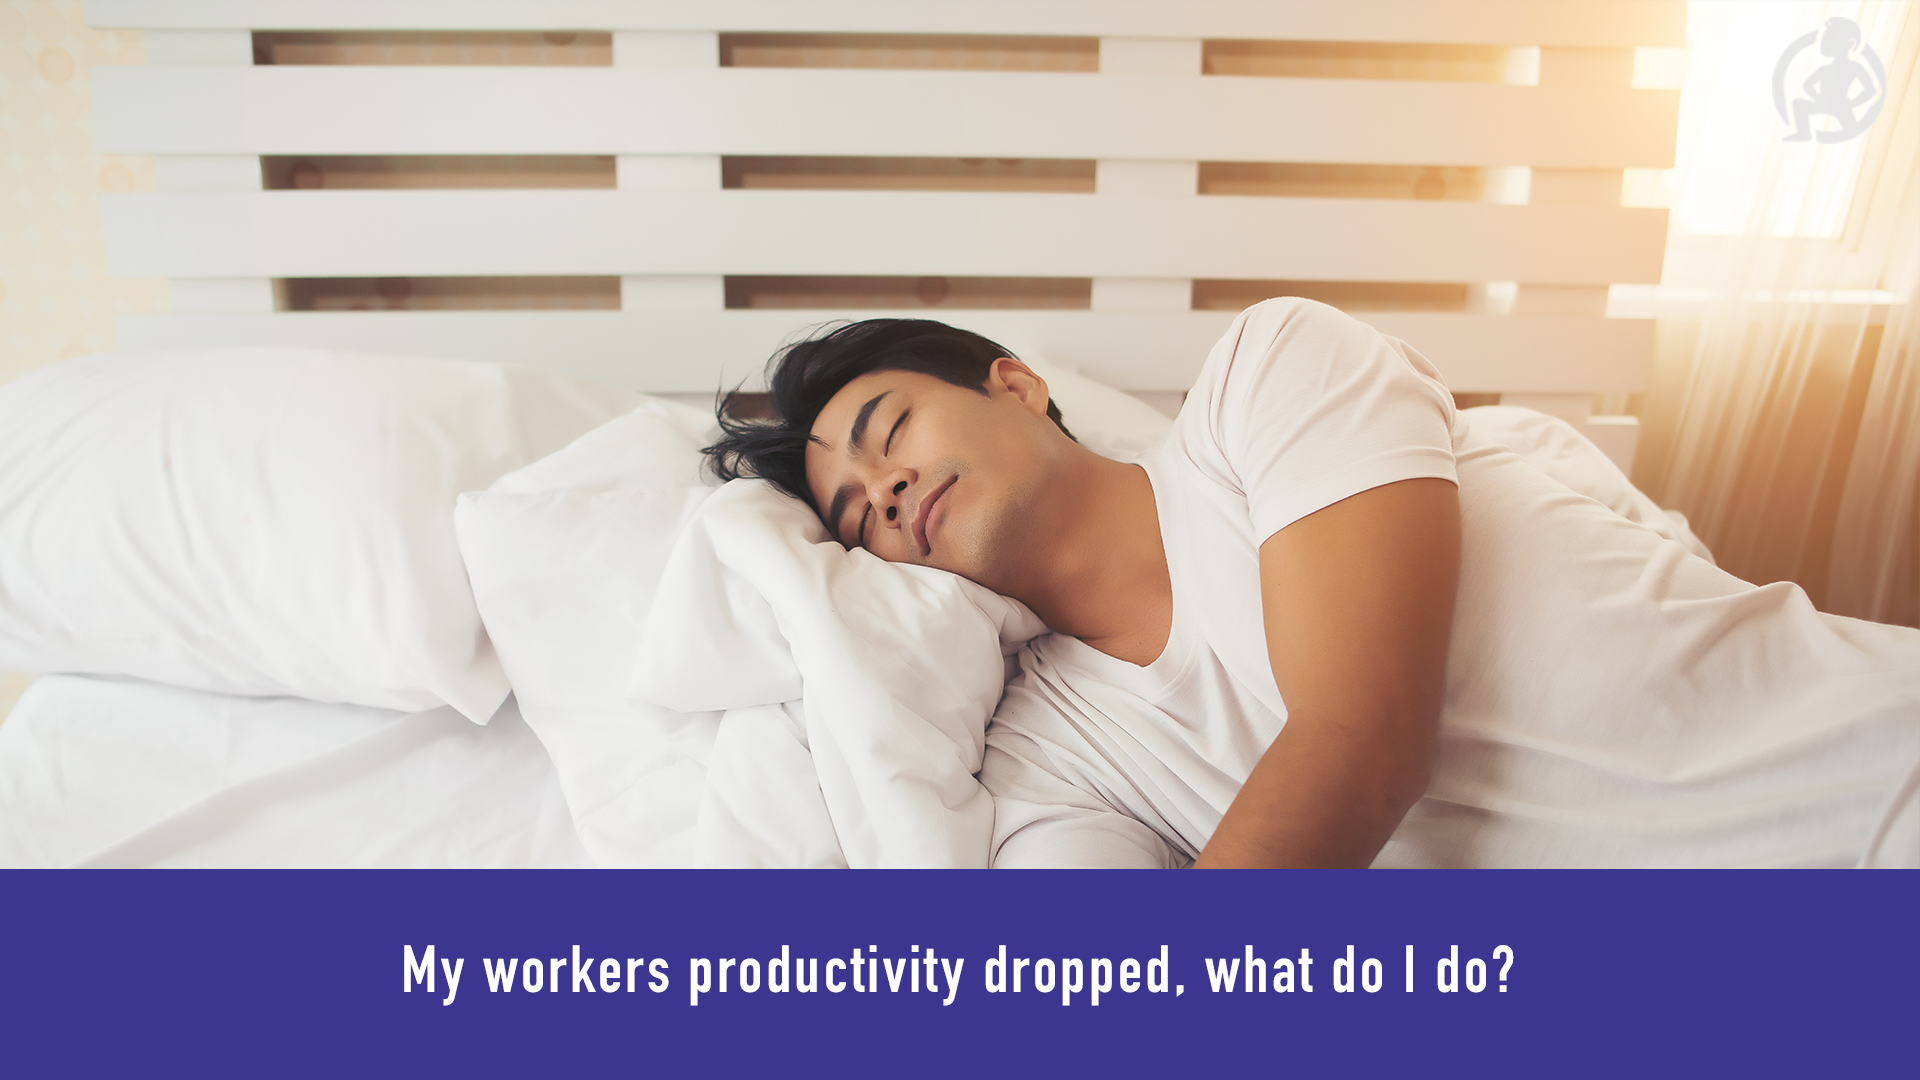 My workers productivity dropped, what do I do